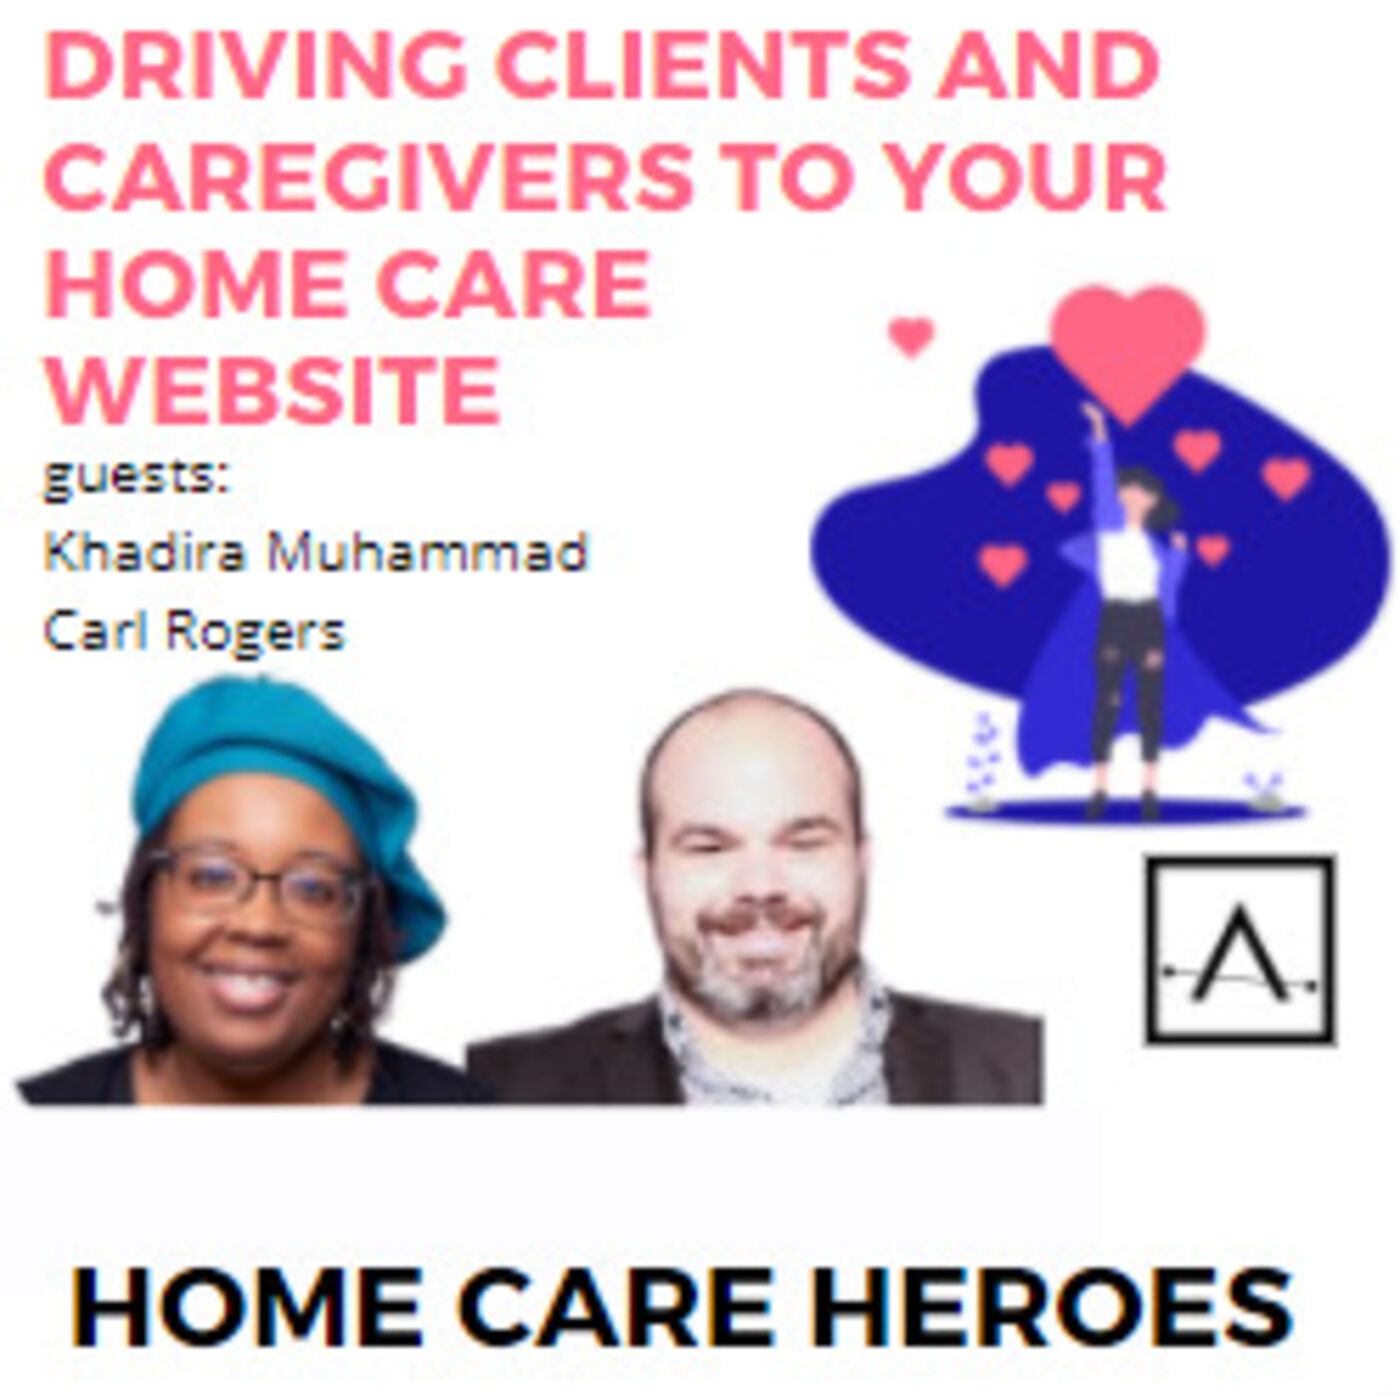 Driving Clients and Caregivers to your Home Care Website (guests Khadira Muhhamad and Carl Rogers) - Rebroadcast